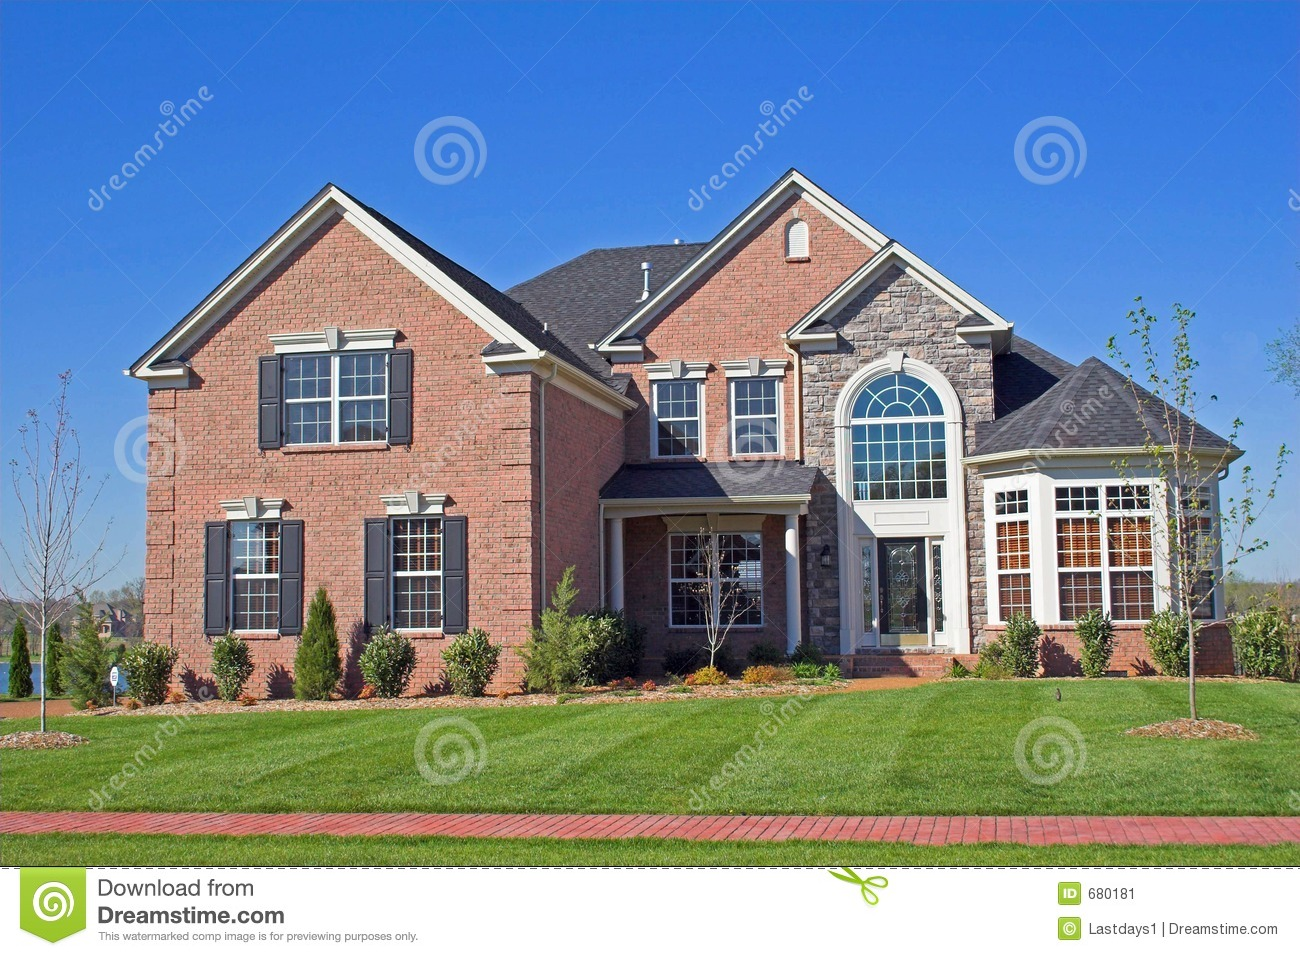 Beautiful homes series 1d stock image image 680181 for Beautiful home pictures